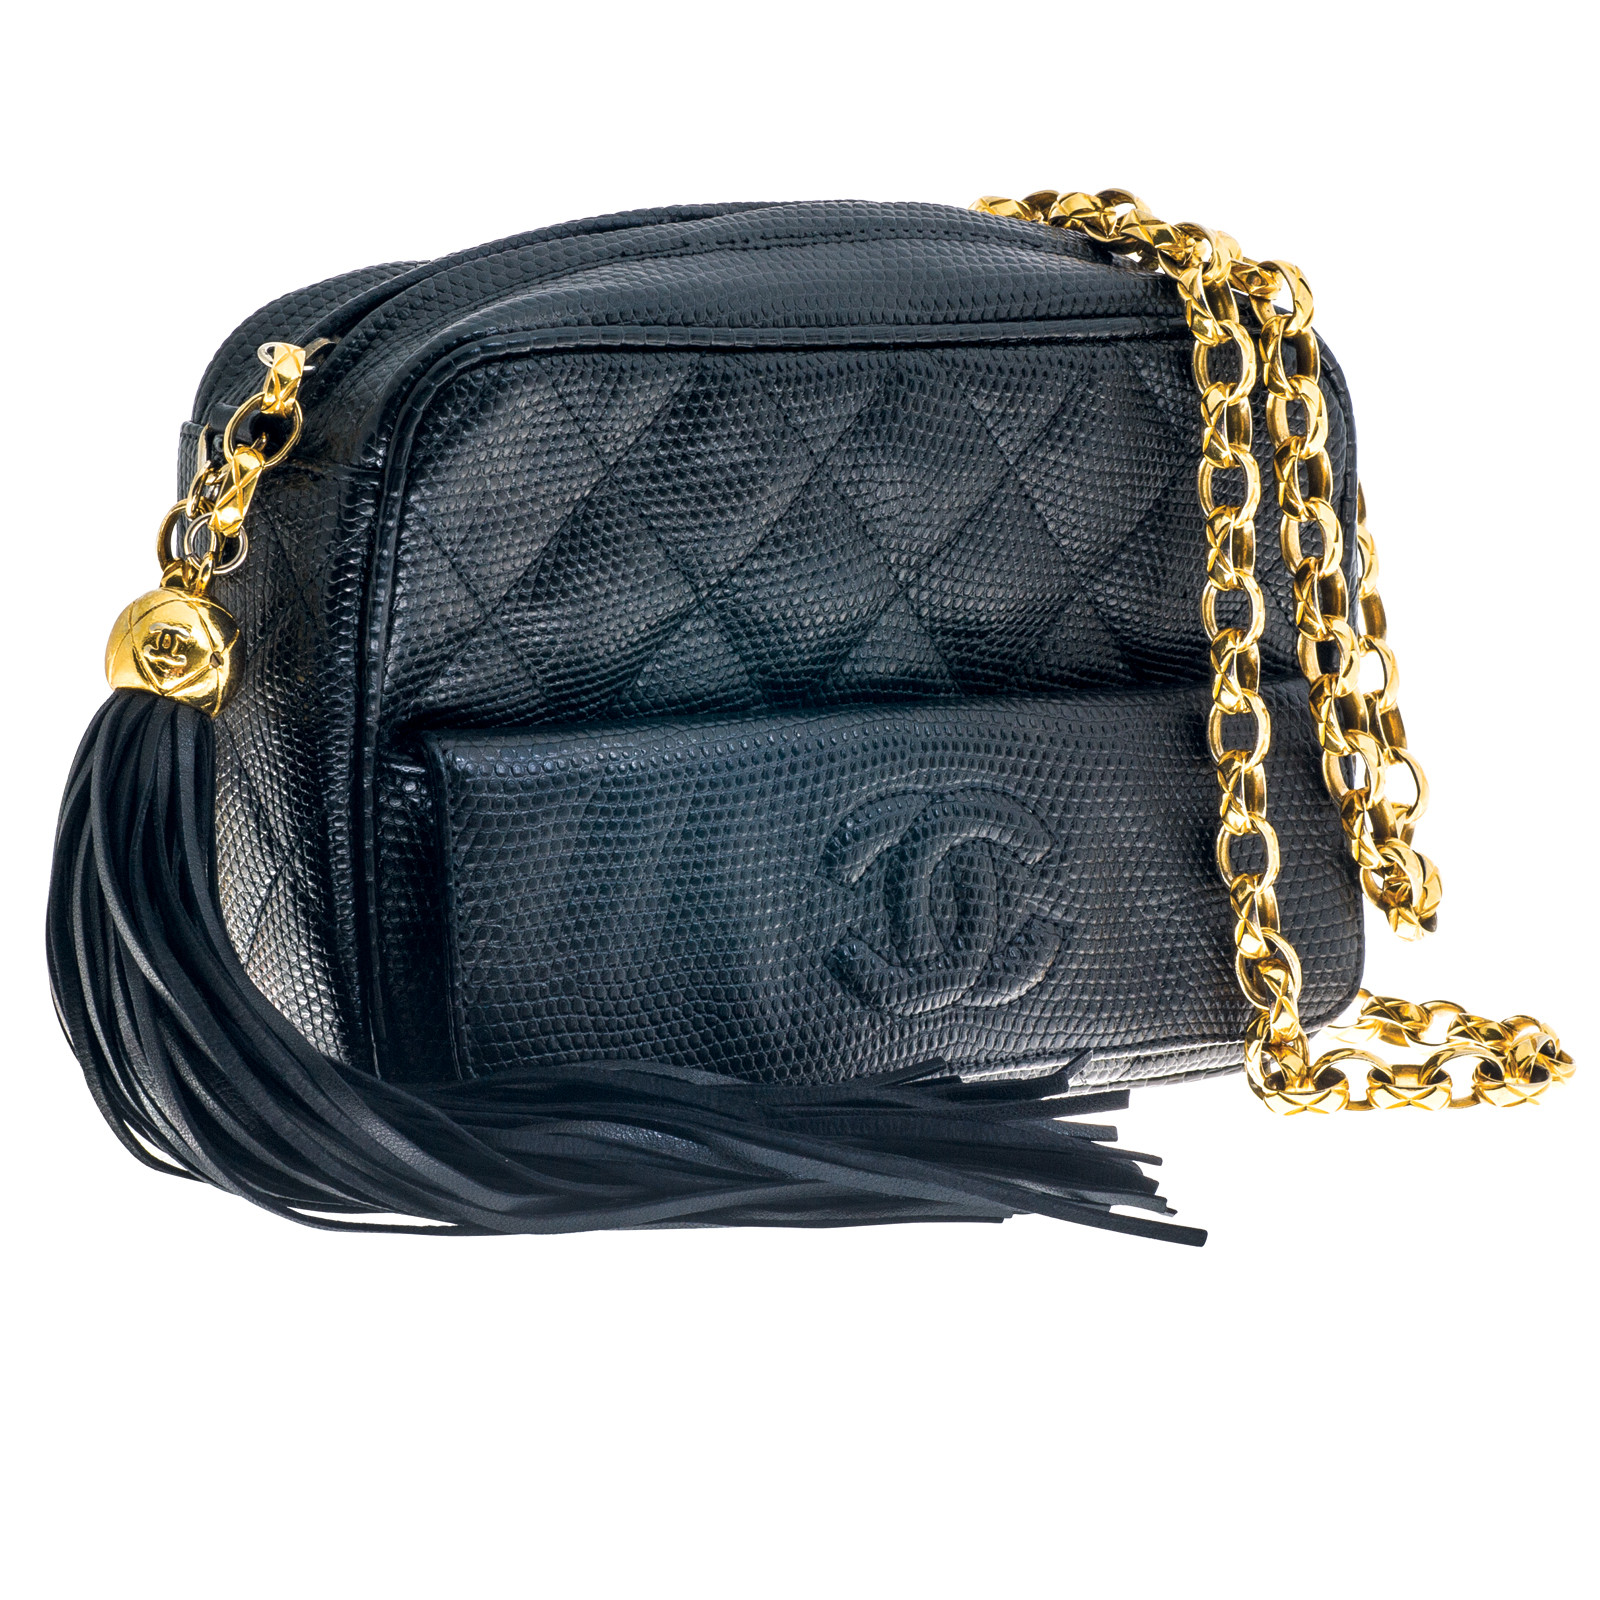 Vintage Chanel Lizard Camera Bag